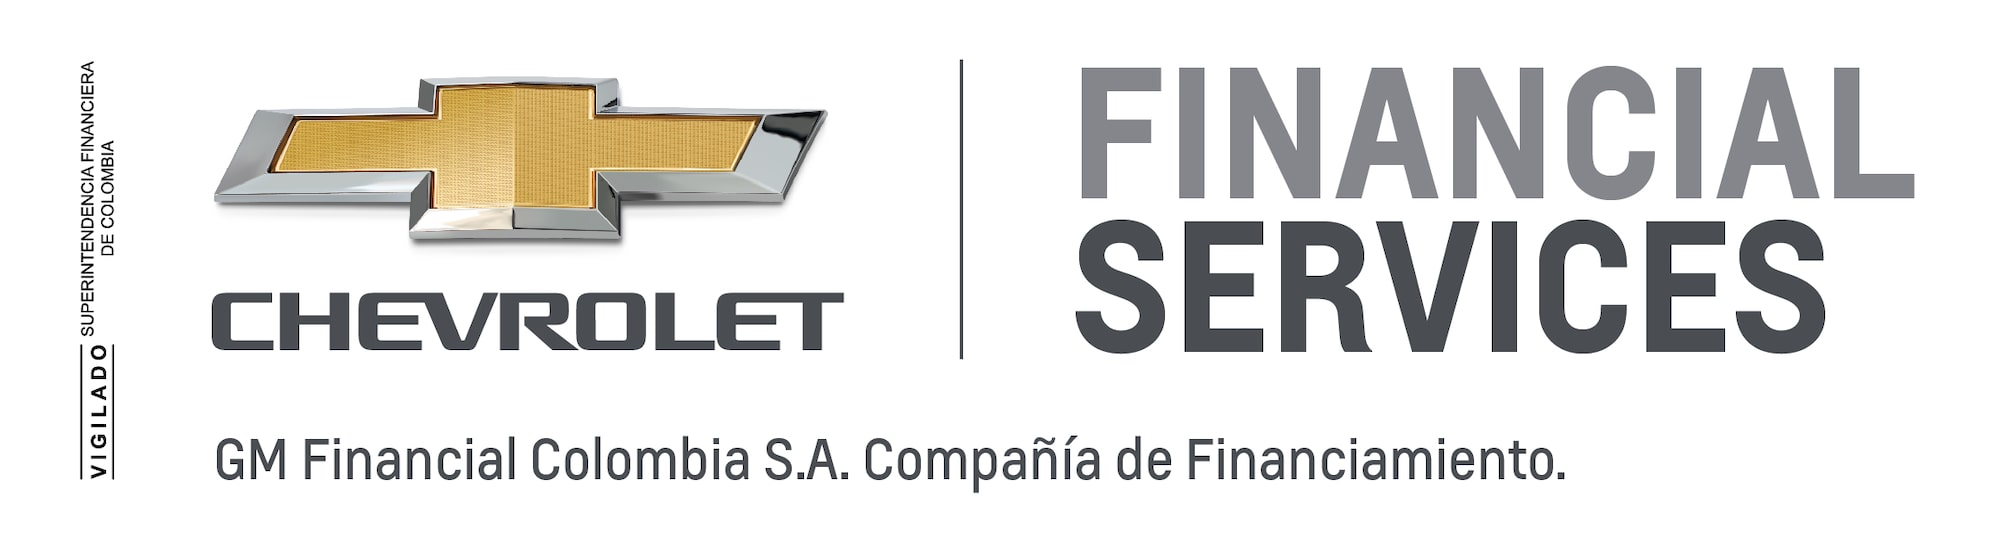 Concesionario Chevrolet  - Financial Services